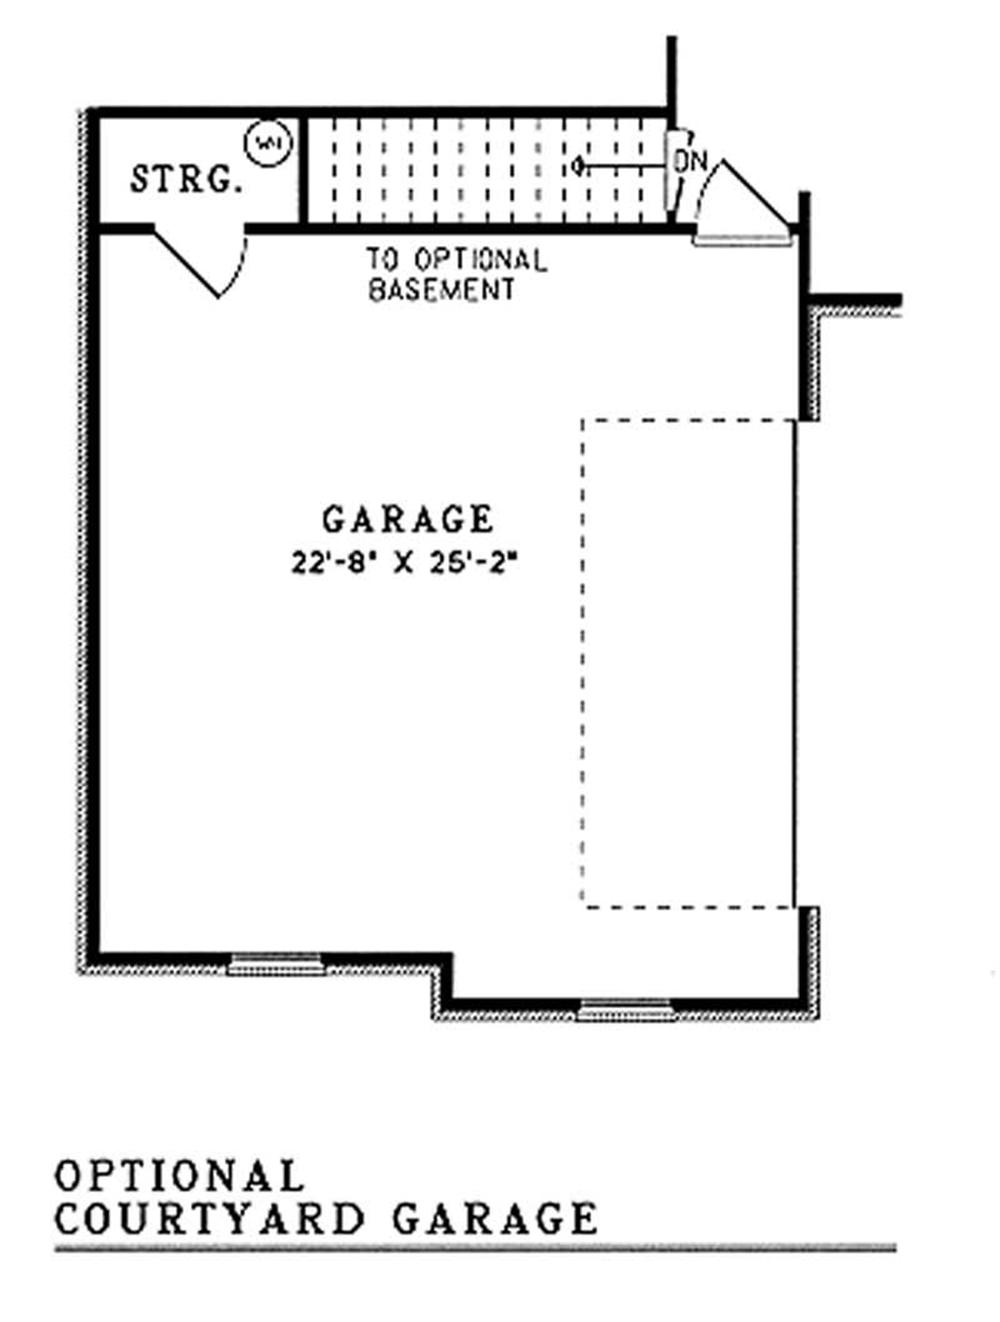 Optional Courtyard Garage